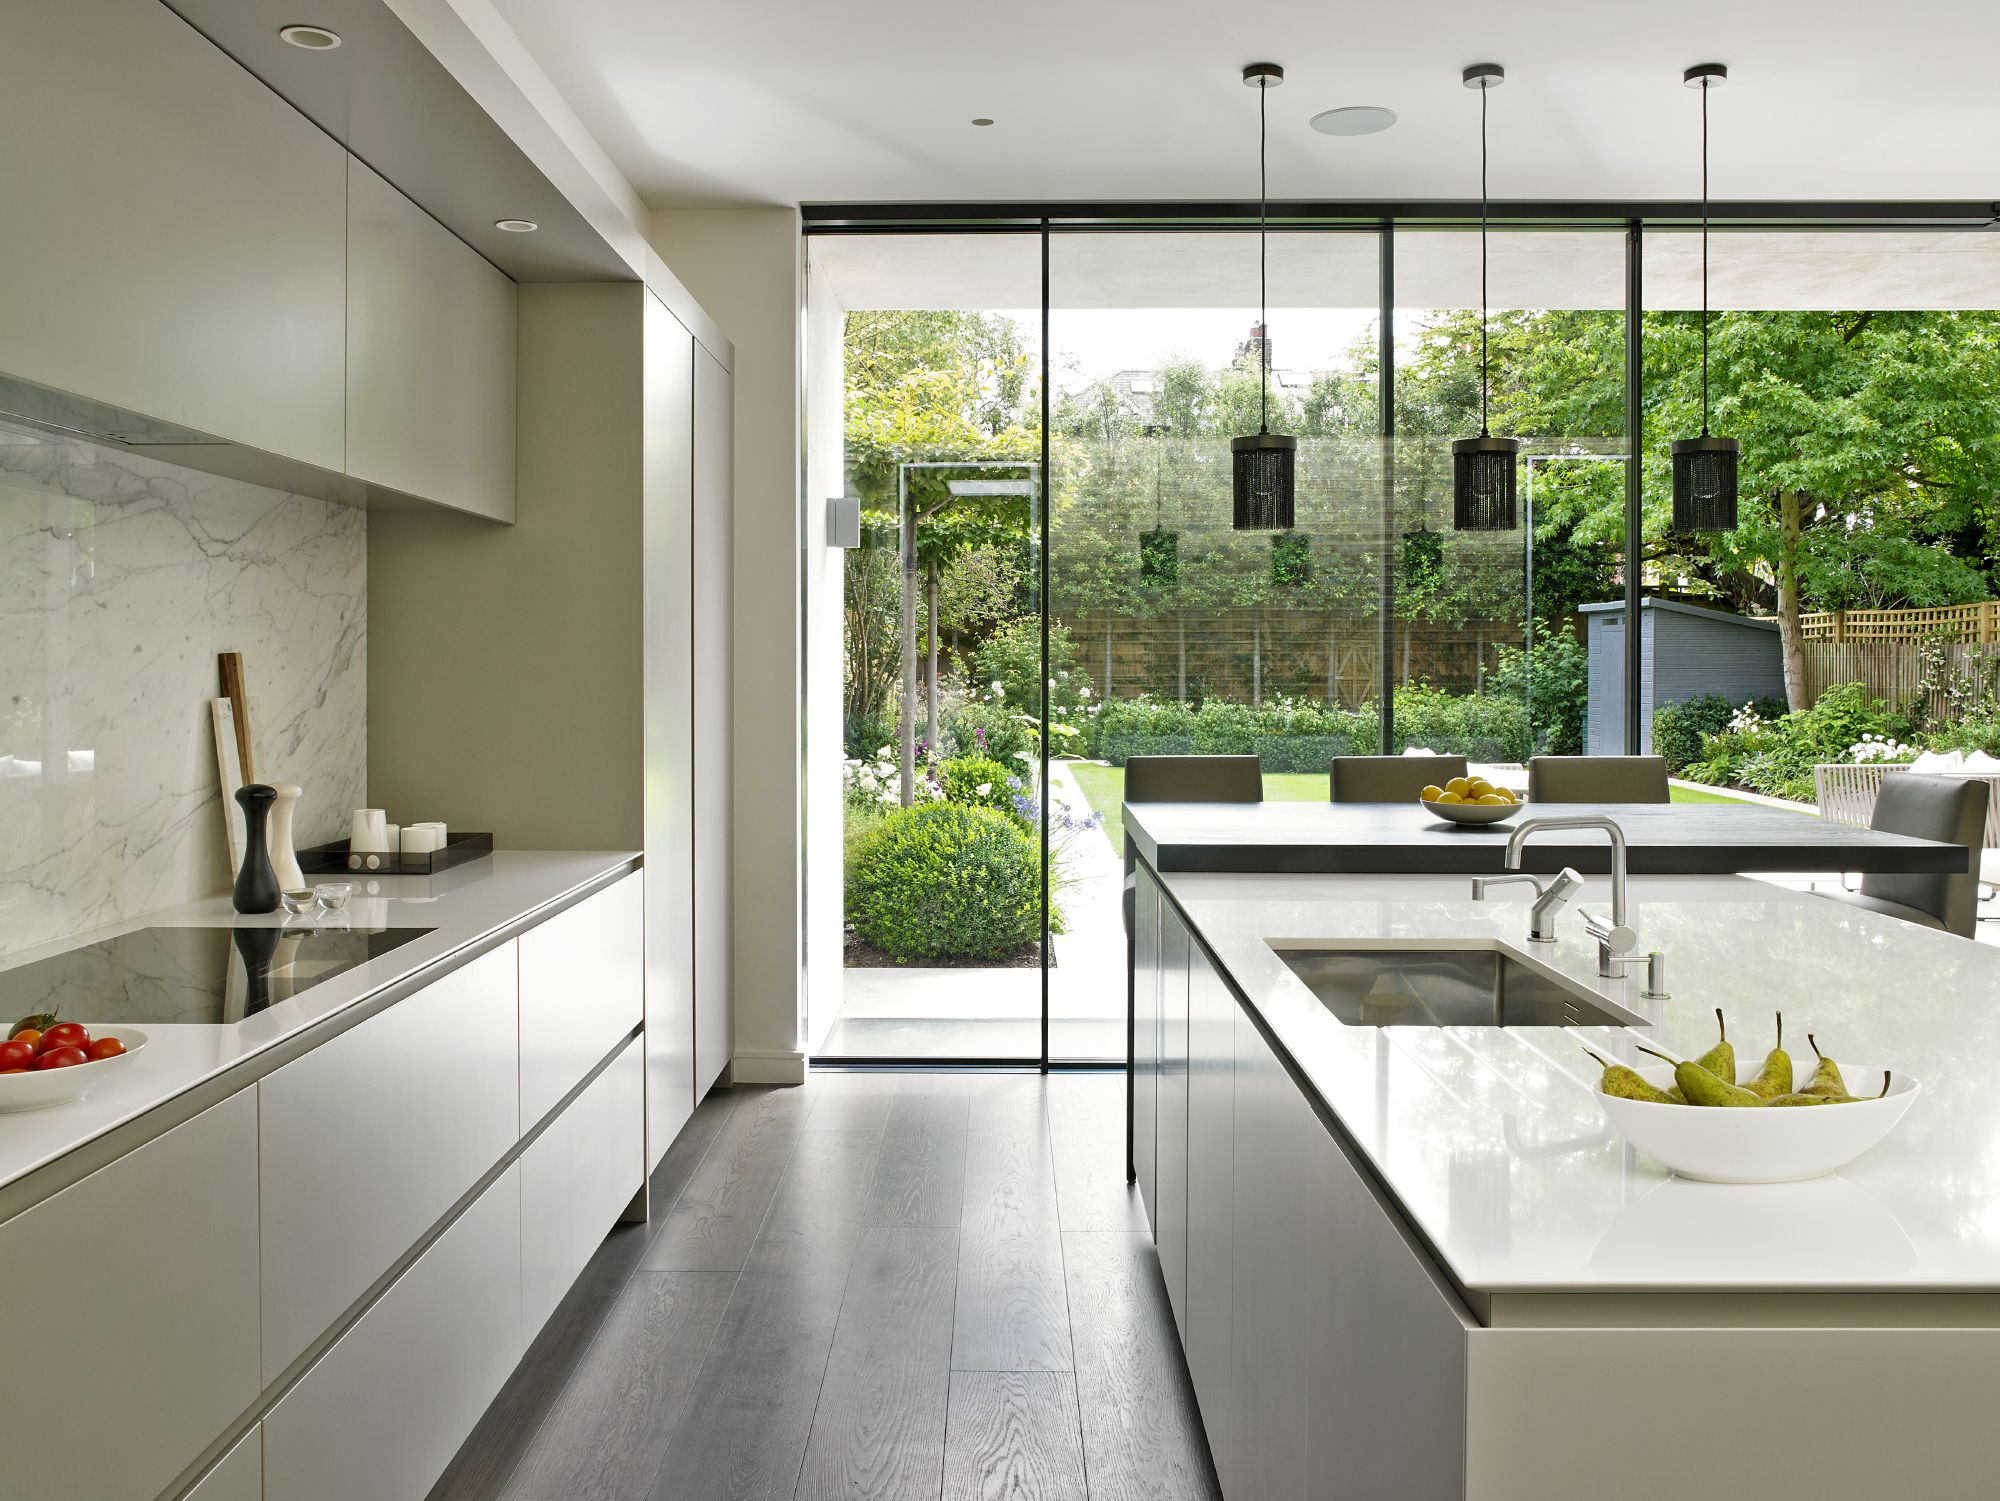 Kitchen make your kitchen dazzle with pertaining to kitchen design - Sleek Minimalist Modern Kitchen Design In Wandsworth With Handle Less Cabinets Large